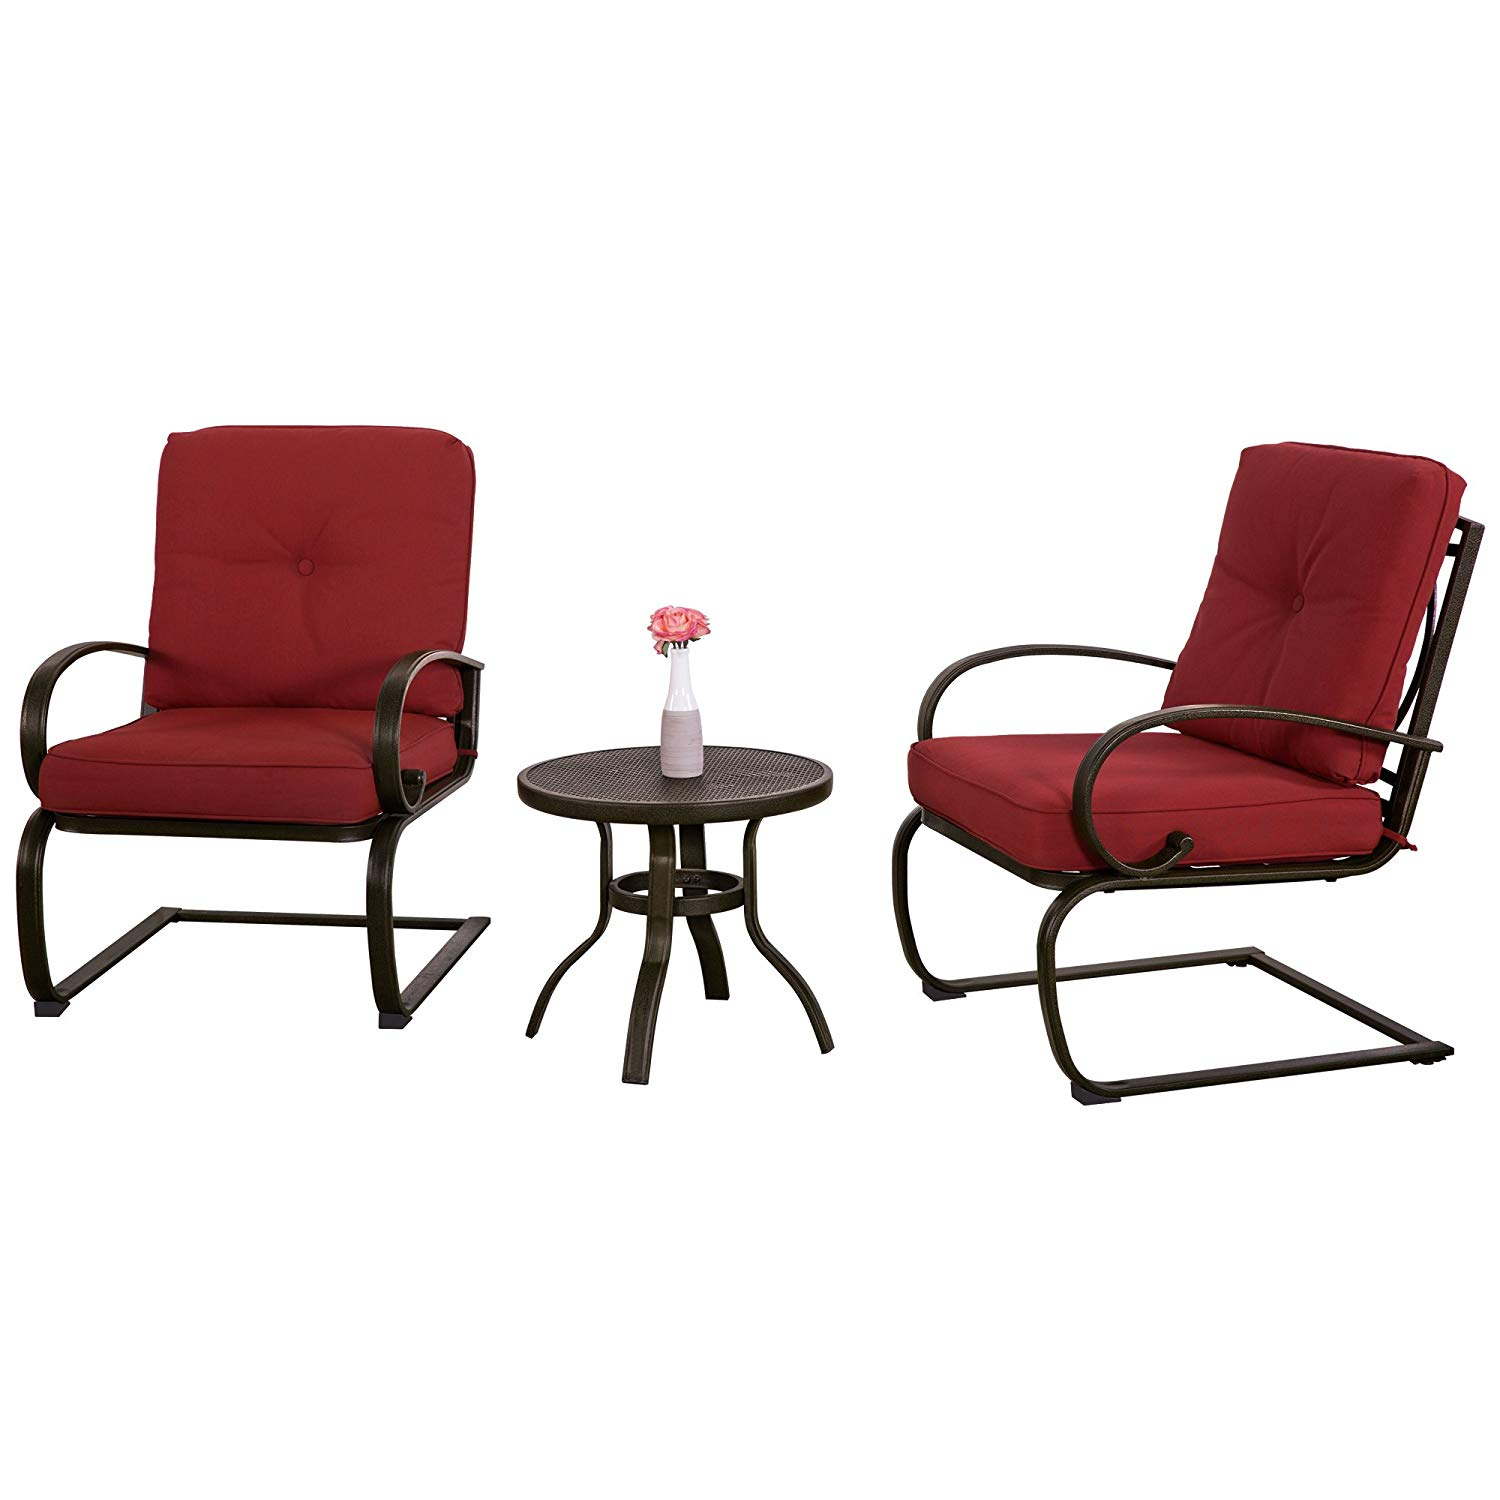 Get quotations · care 4 home llc patio garden porch conversation coffee set round table and 2 upholstered